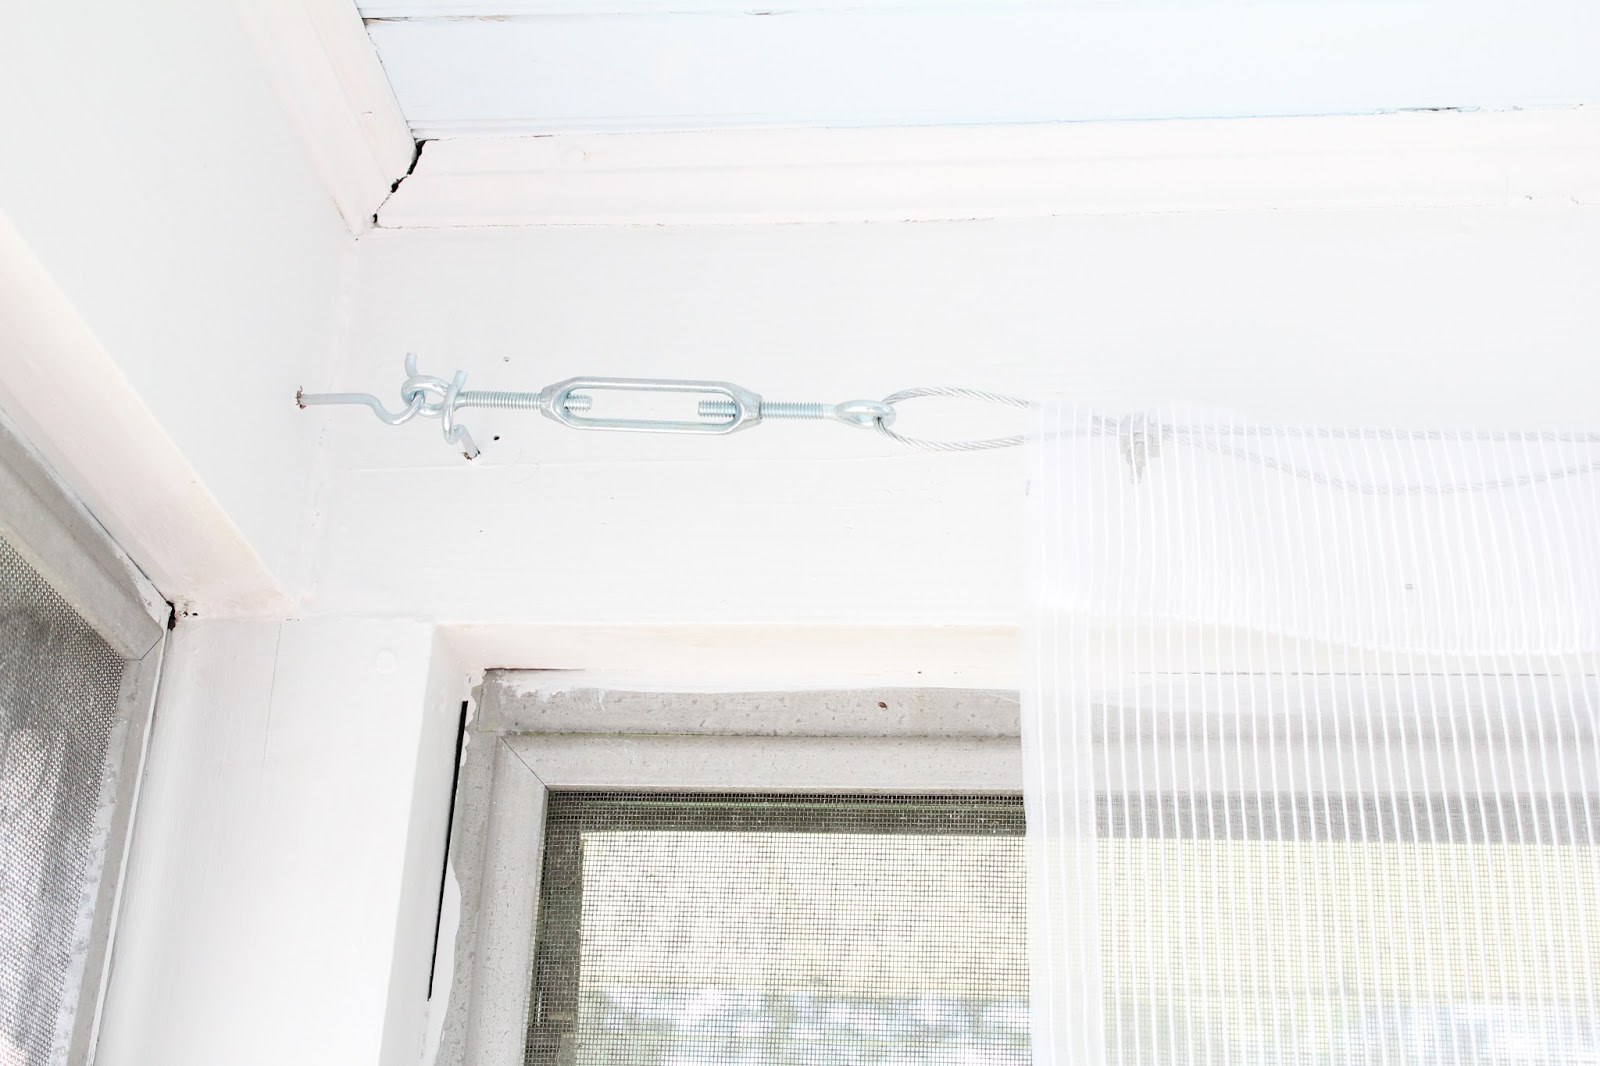 Test Hanging Curtains With Tension Wire